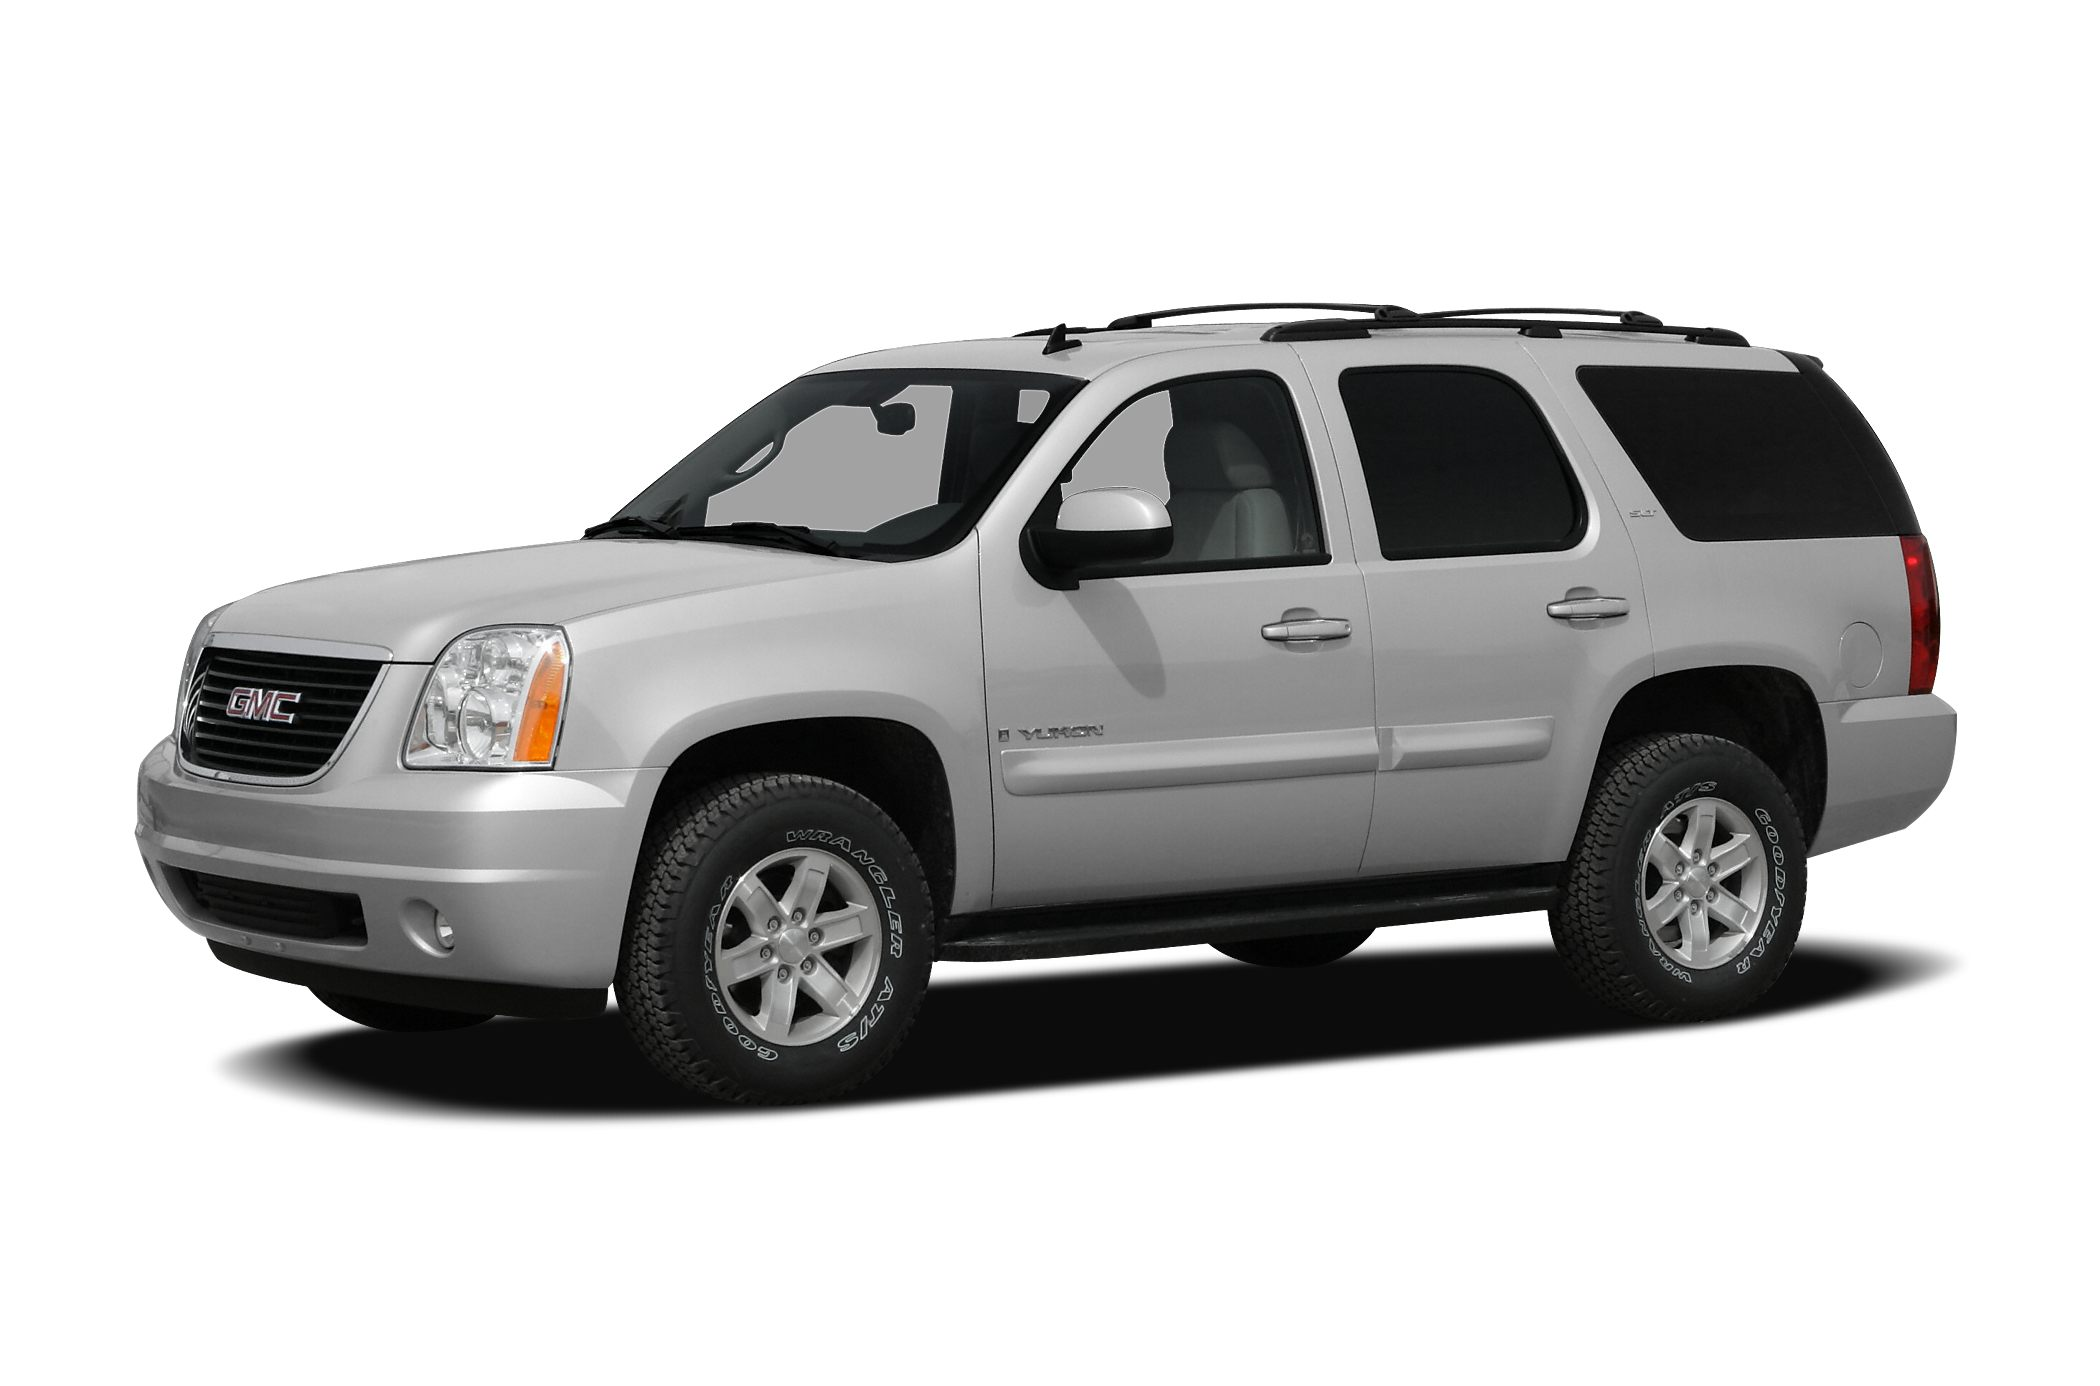 2010 GMC Yukon SLE SUV for sale in Tacoma for $23,995 with 83,609 miles.